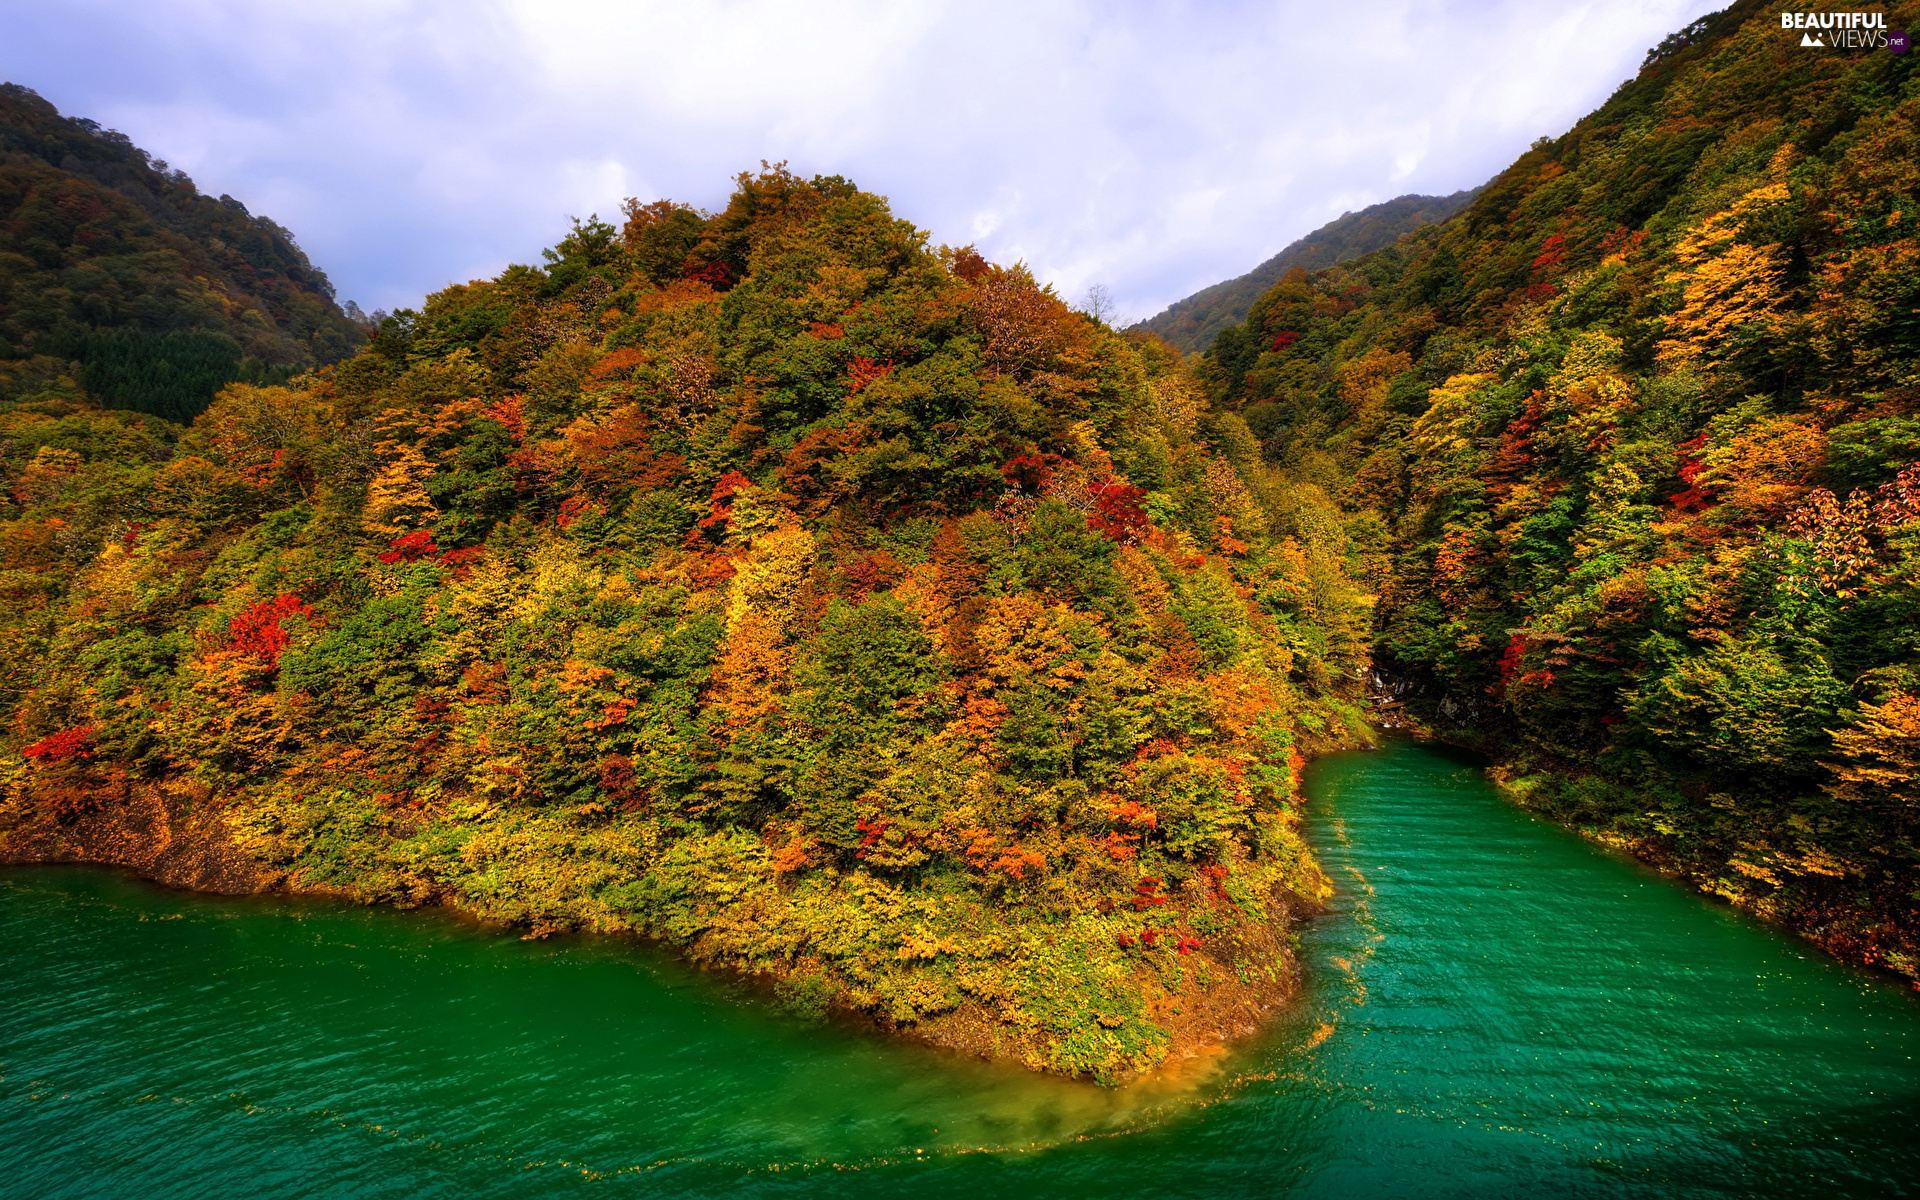 Mountains, woods, River, autumn